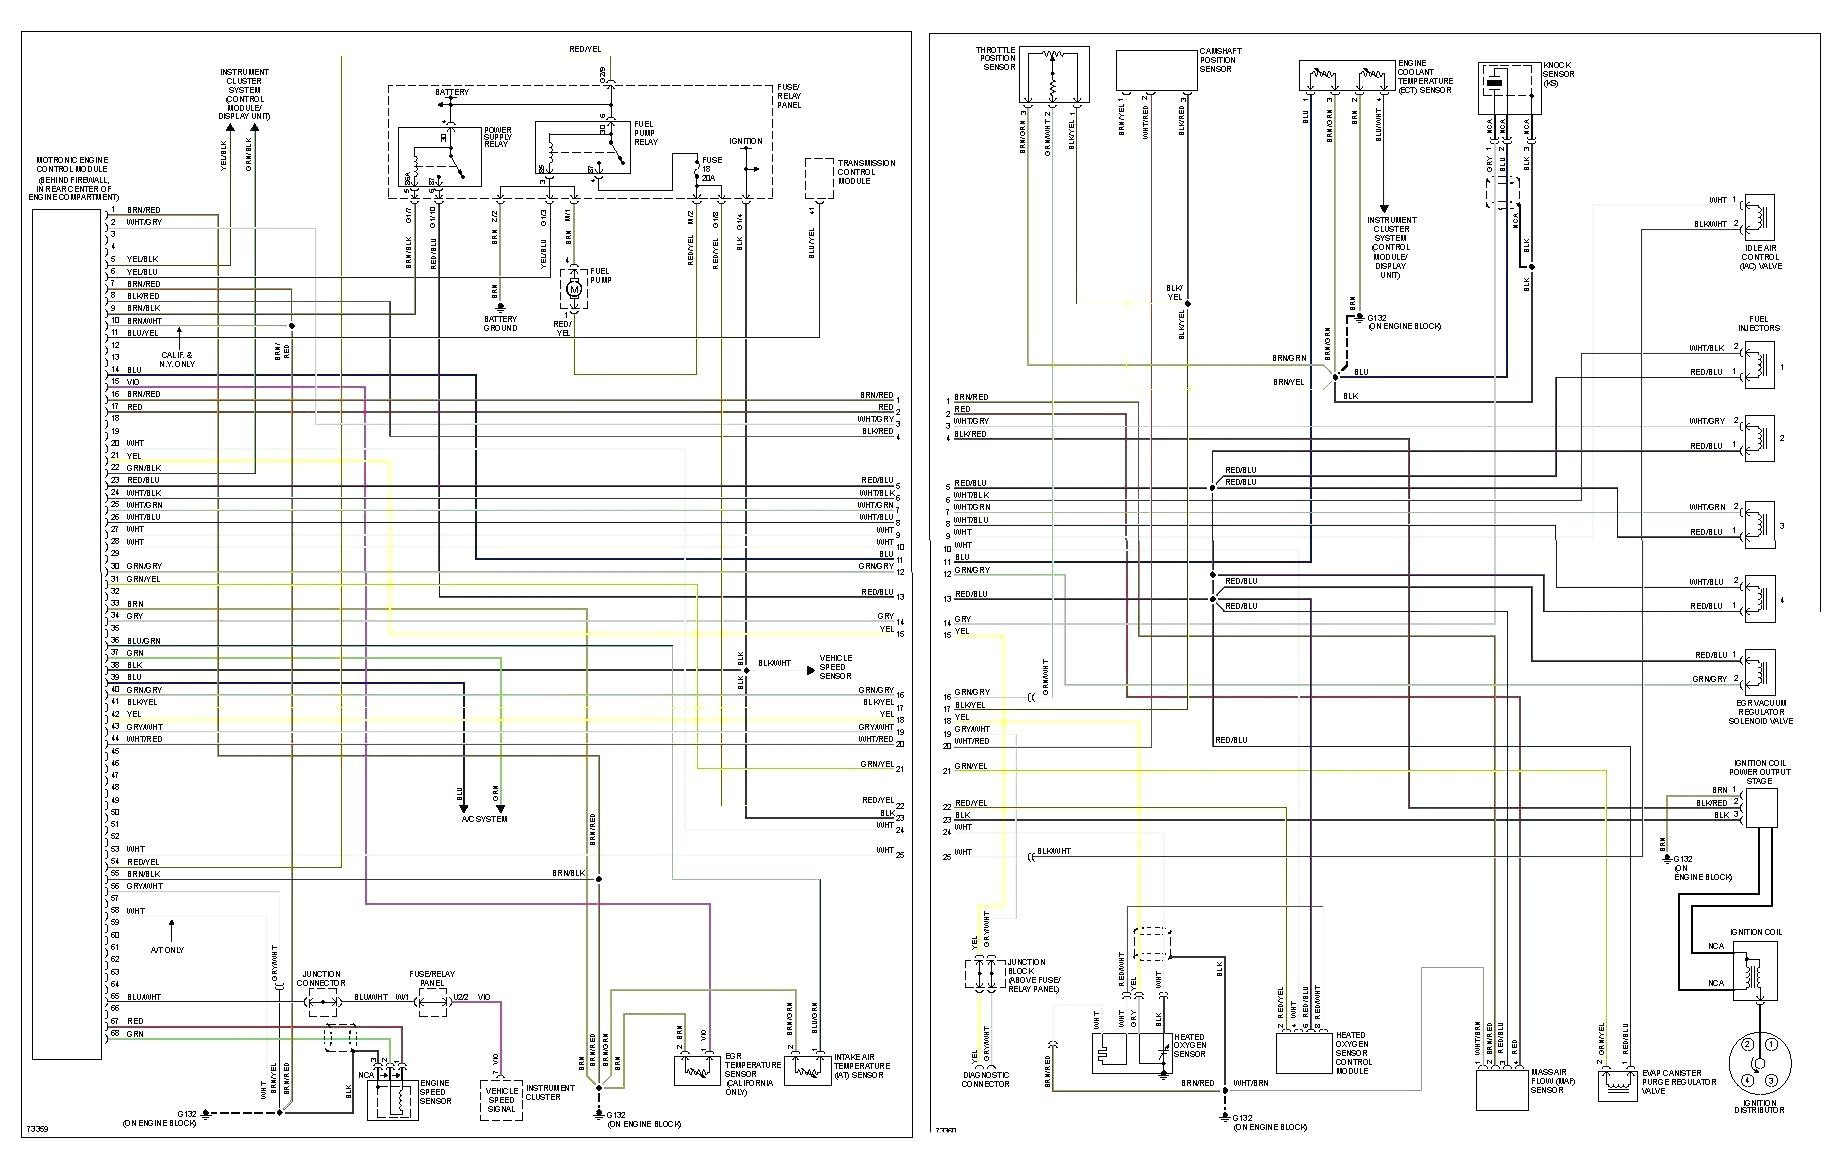 Vw Beetle Ignition Switch Wiring Diagram from detoxicrecenze.com